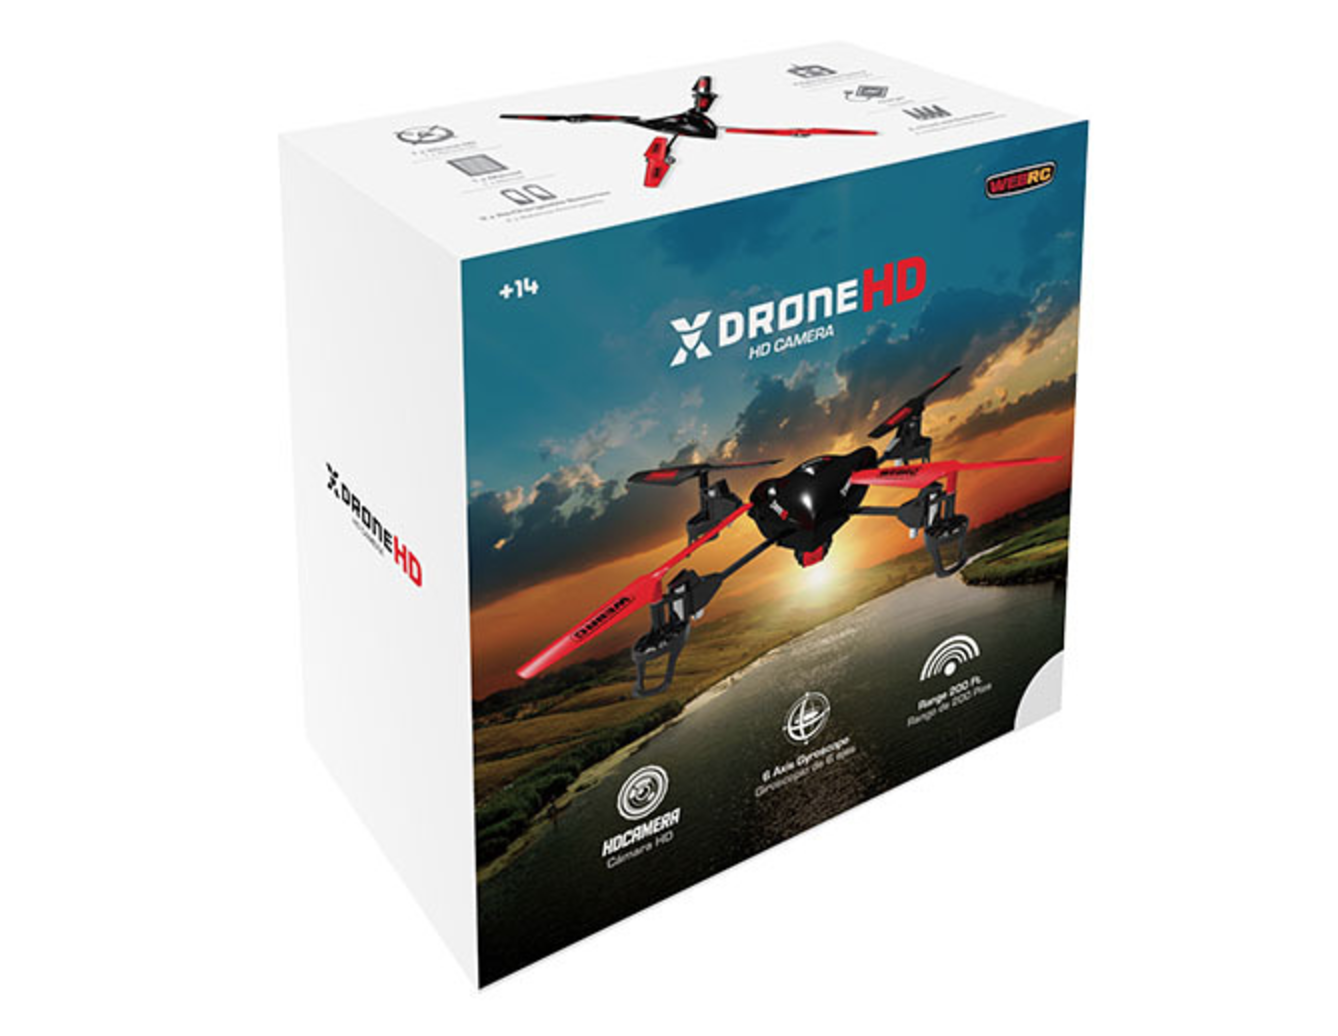 XDrone - Customer Reviews - We love them !!!